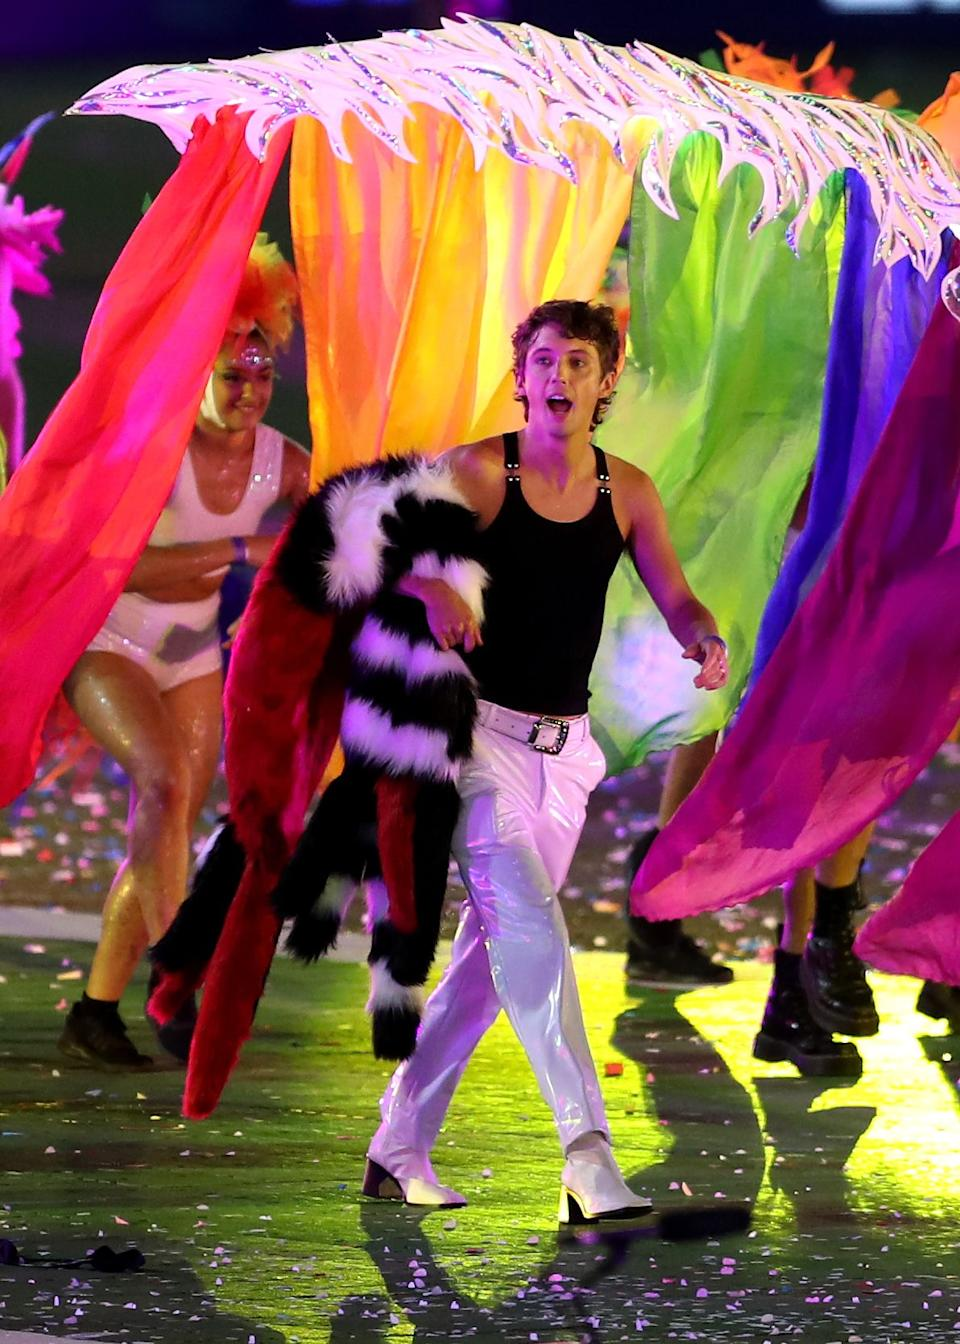 Troye Sivan takes part during the 43rd Sydney Gay and Lesbian Mardi Gras Parade at the SCG on March 06, 2021 in Sydney, Australia. (Photo: Brendon Thorne/Getty Images)